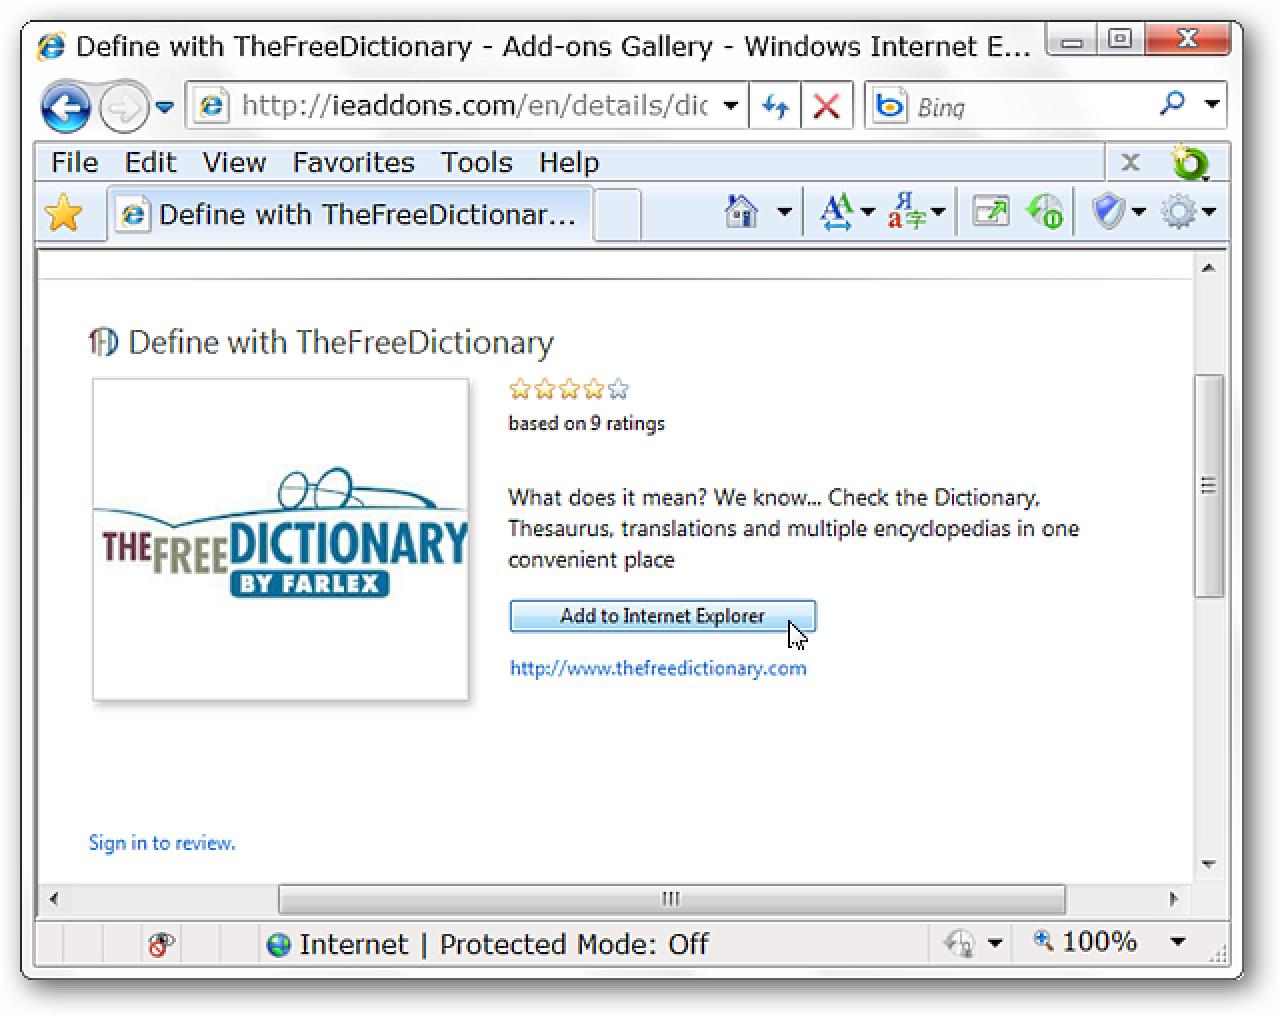 Quickly Lookup Word Definitions with TheFreeDictionary for IE 8